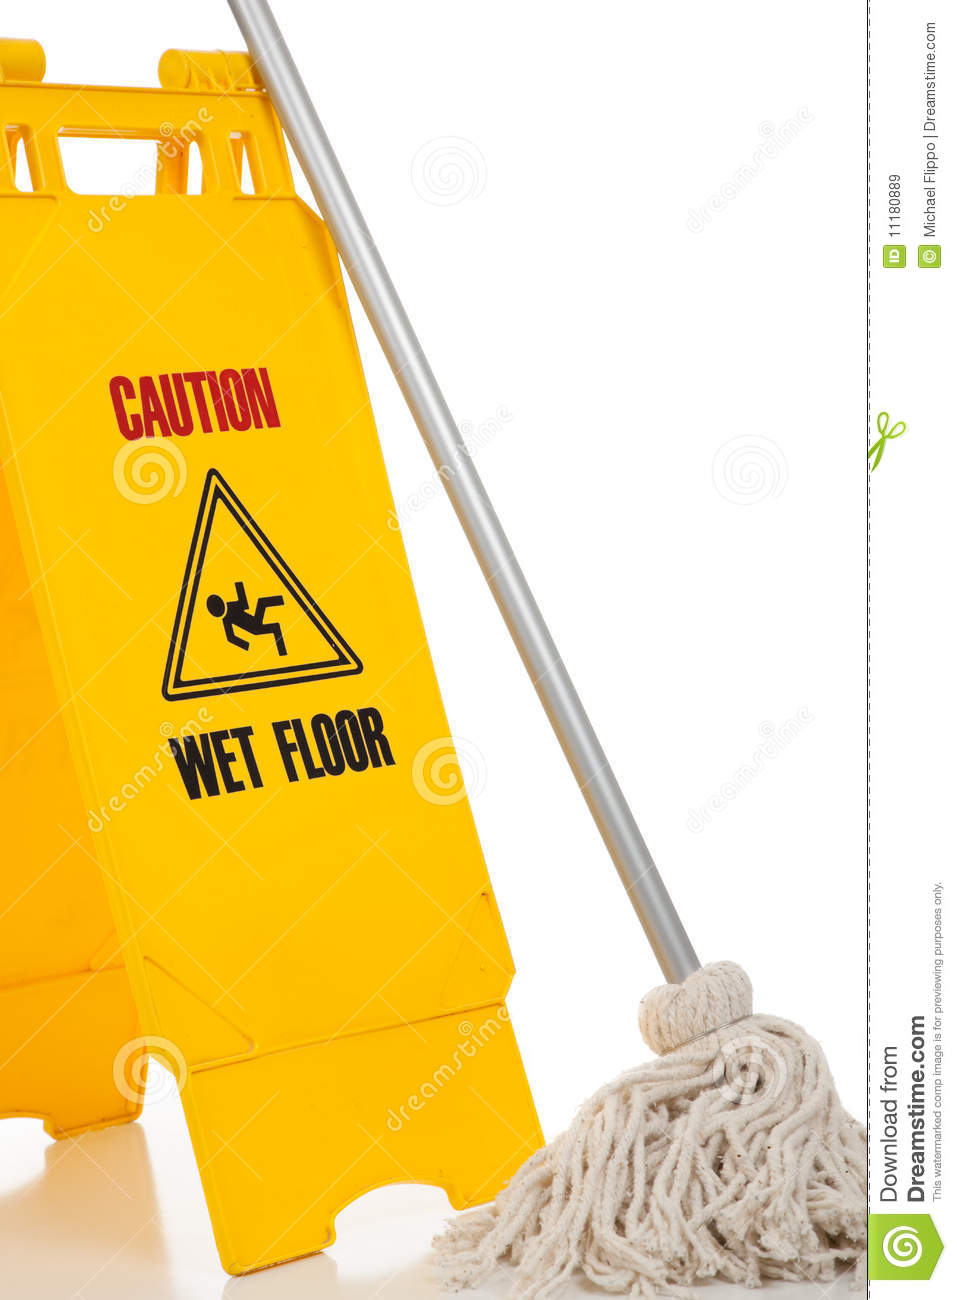 Wet Floor Sign And Mop On White Background Stock Image